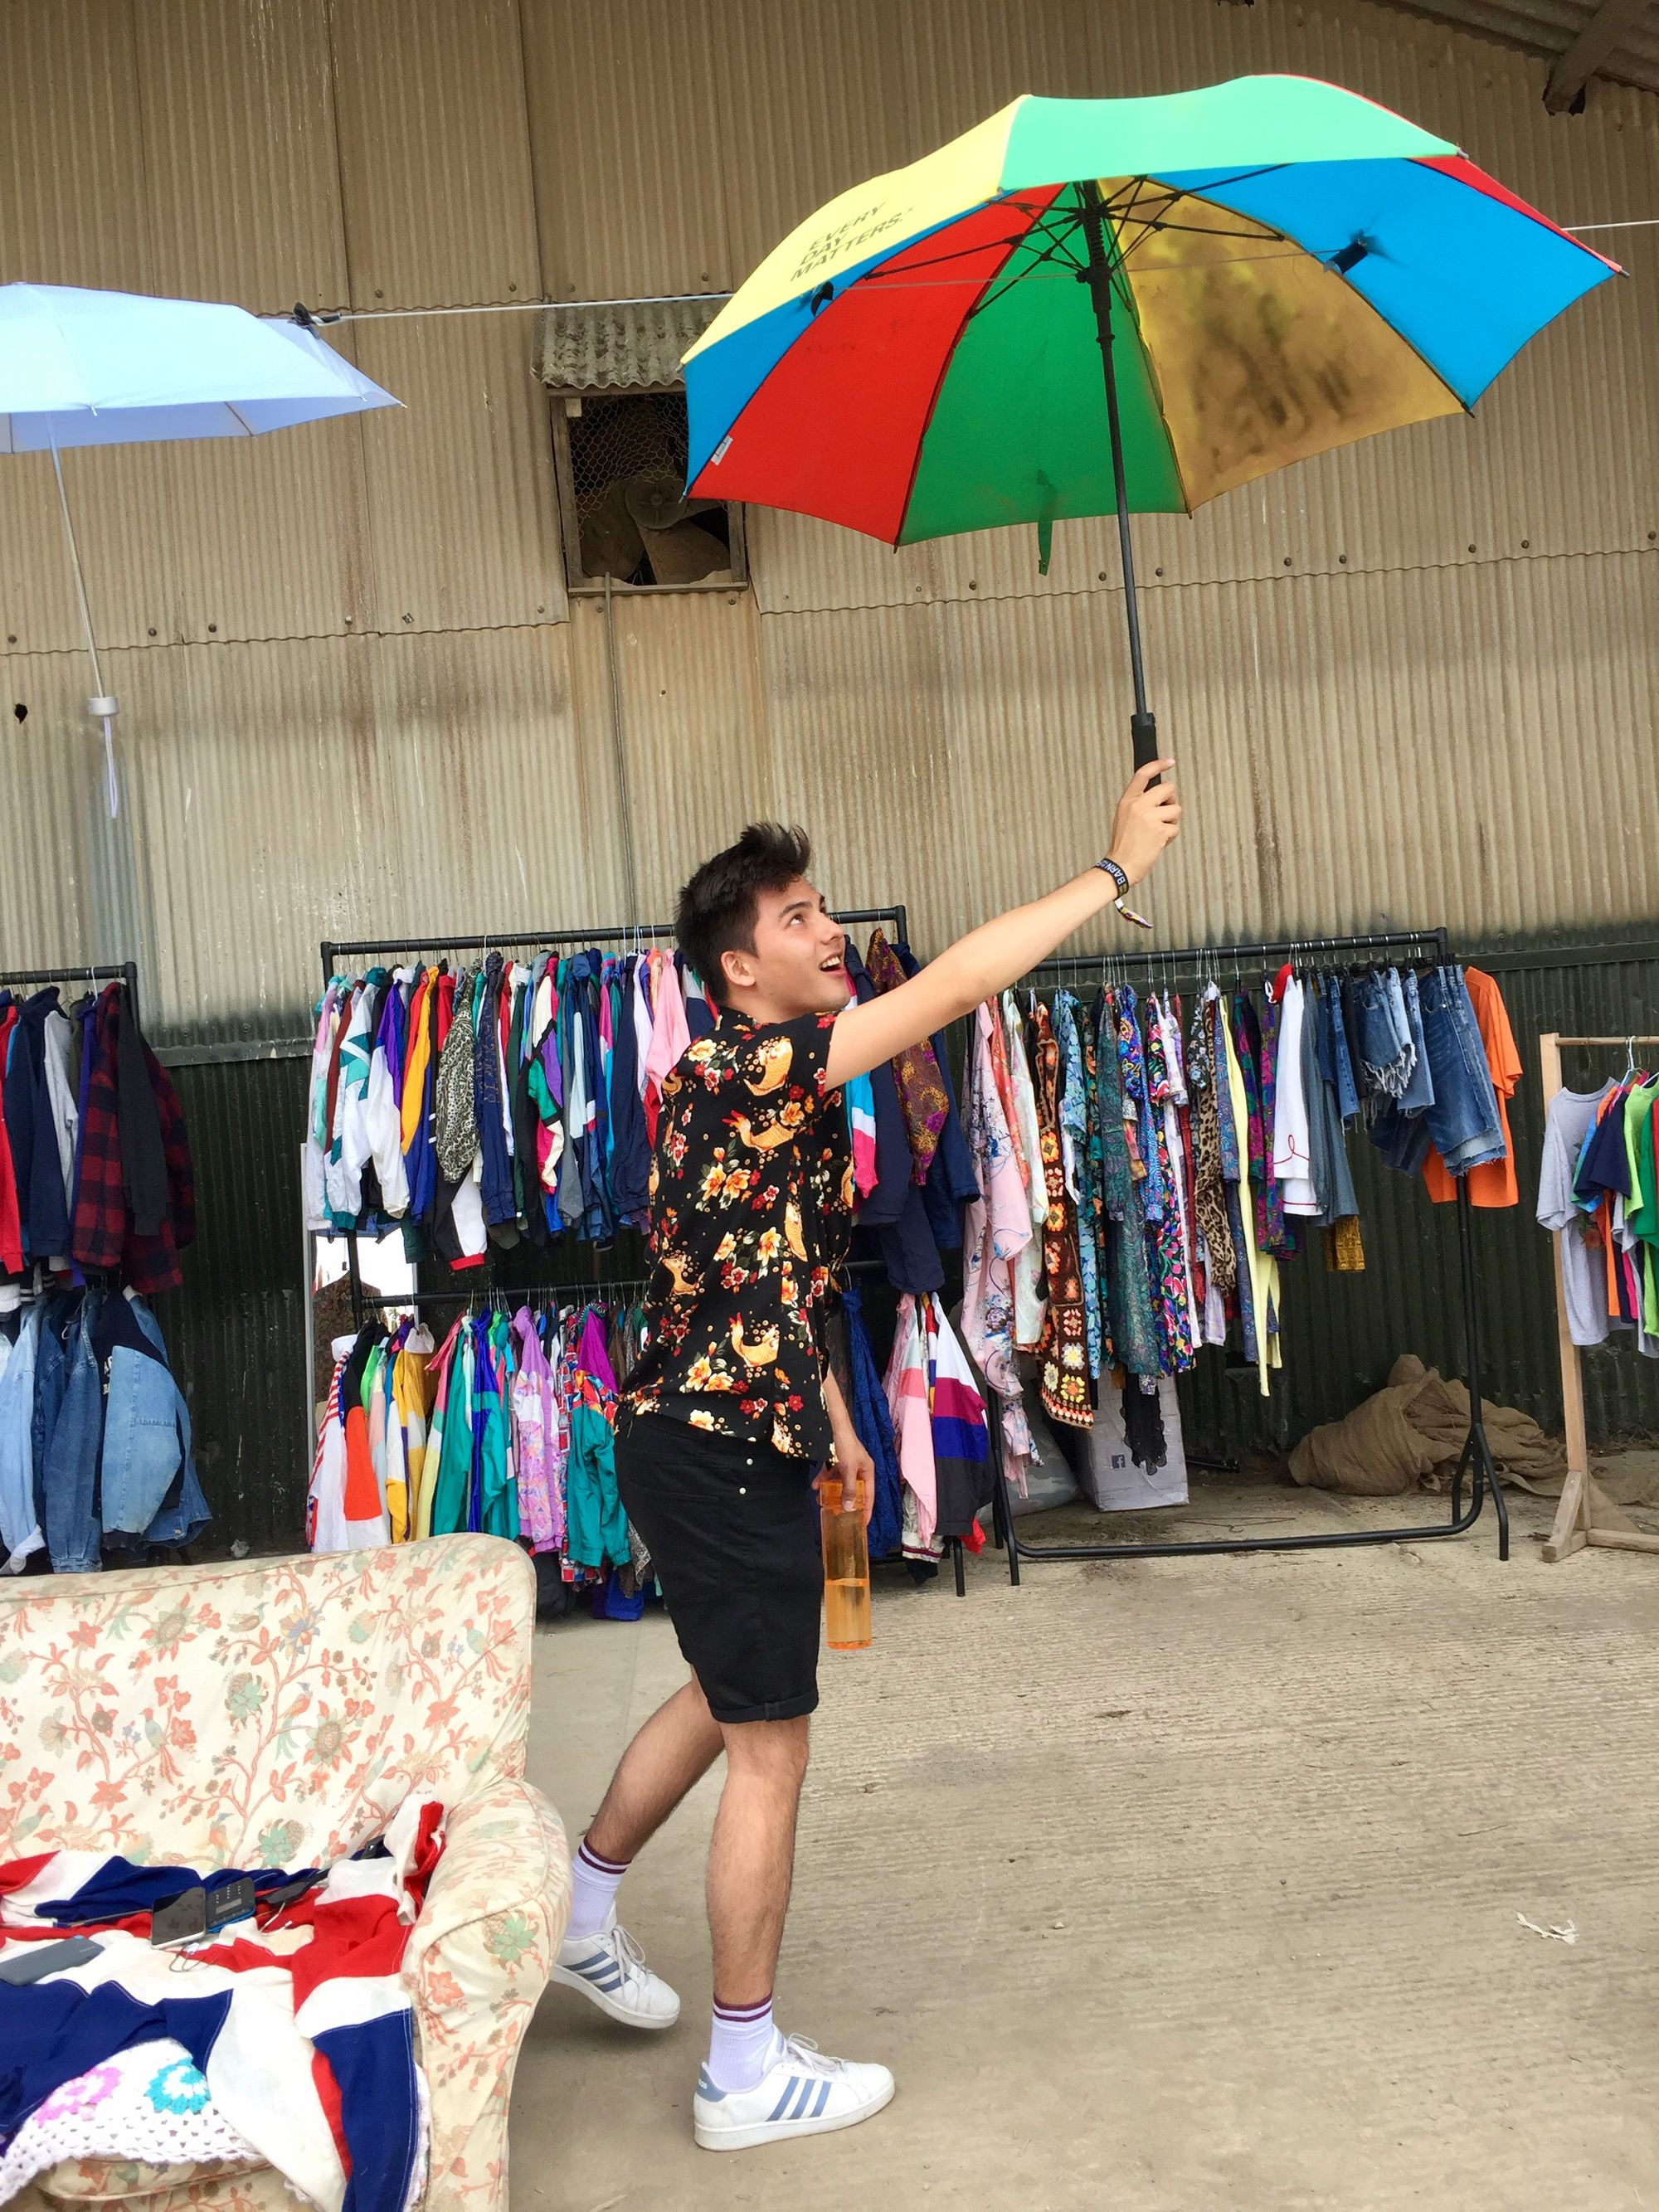 Chris at a festival, holding an umbrella and water bottle against a backdrop of vintage clothing